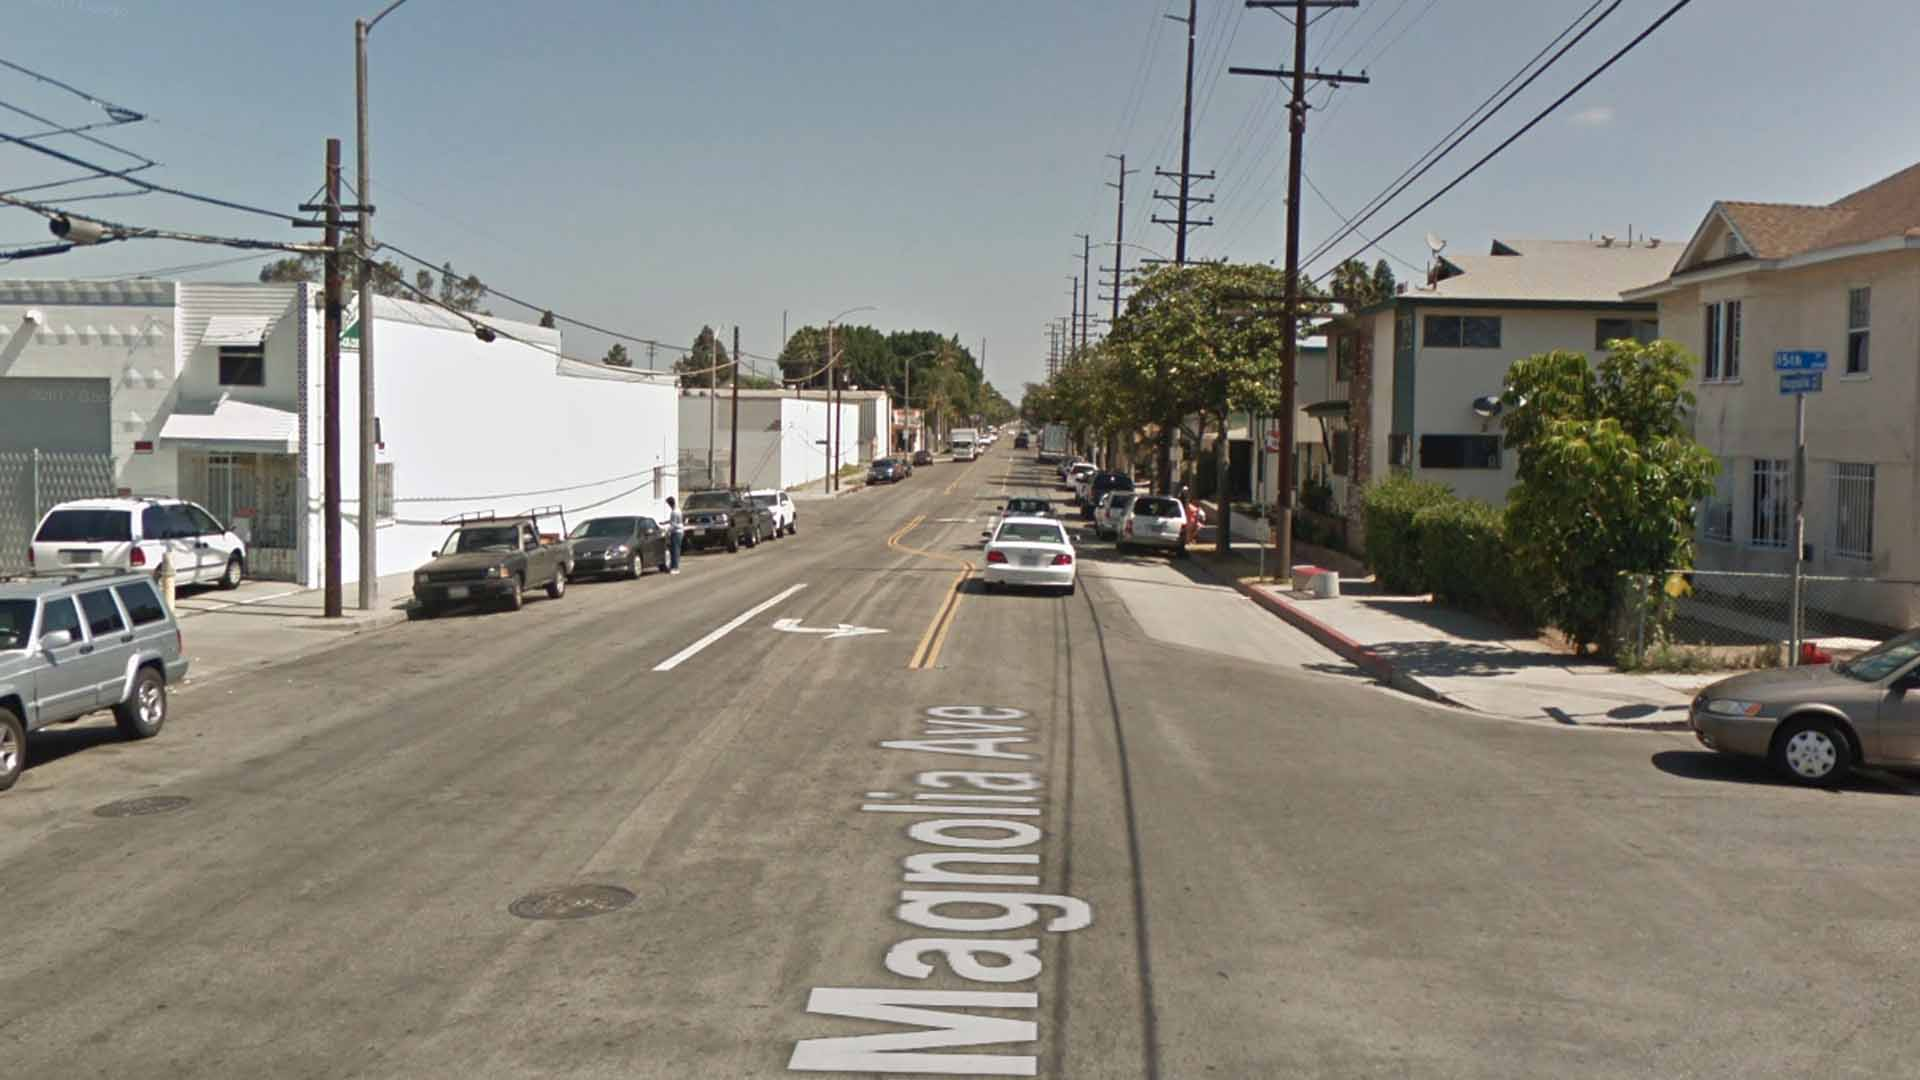 The 1500 block of Magnolia Avenue in Long Beach, as viewed in a Google Street View image.